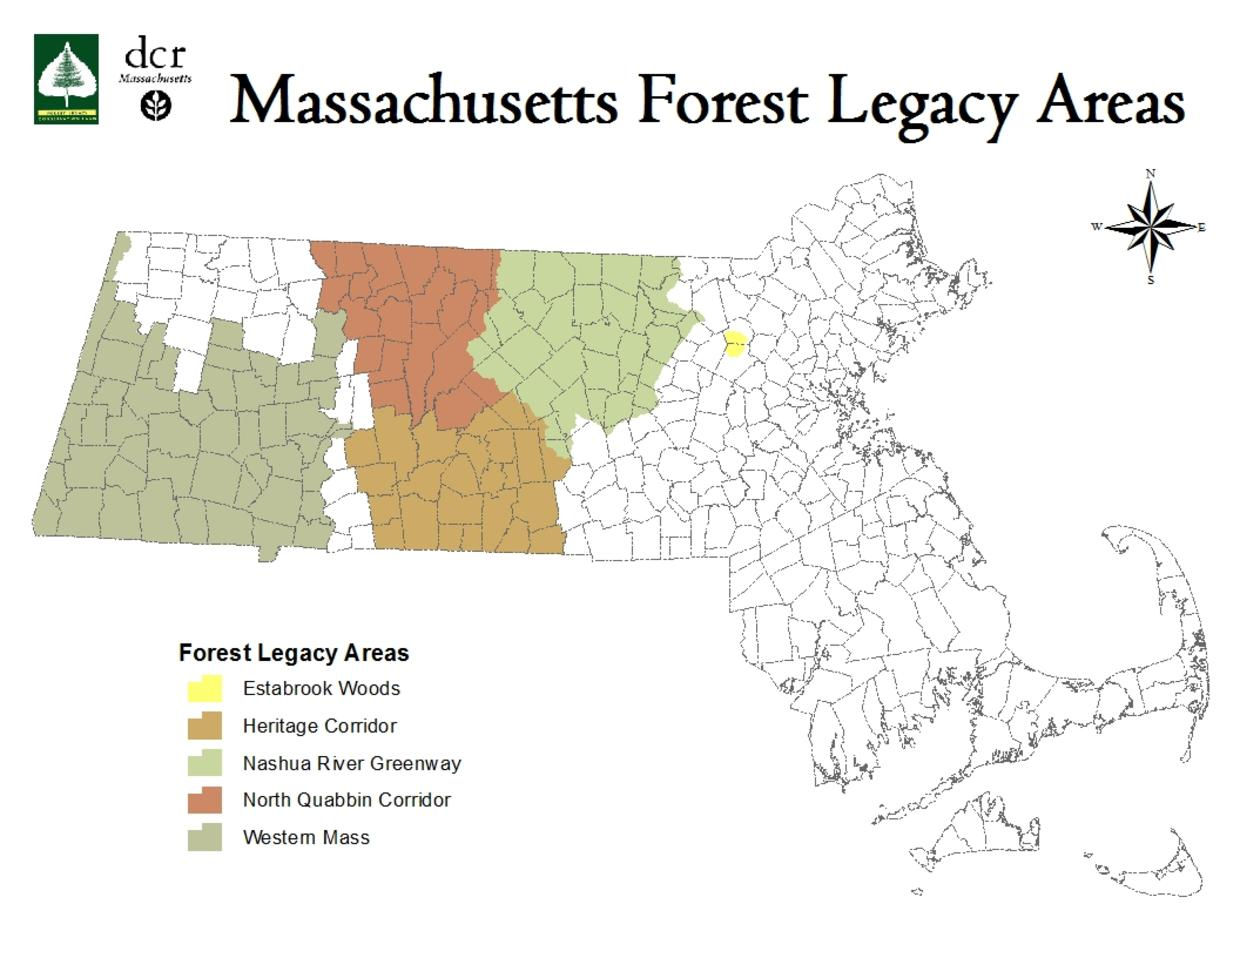 Current Forest Legacy Areas